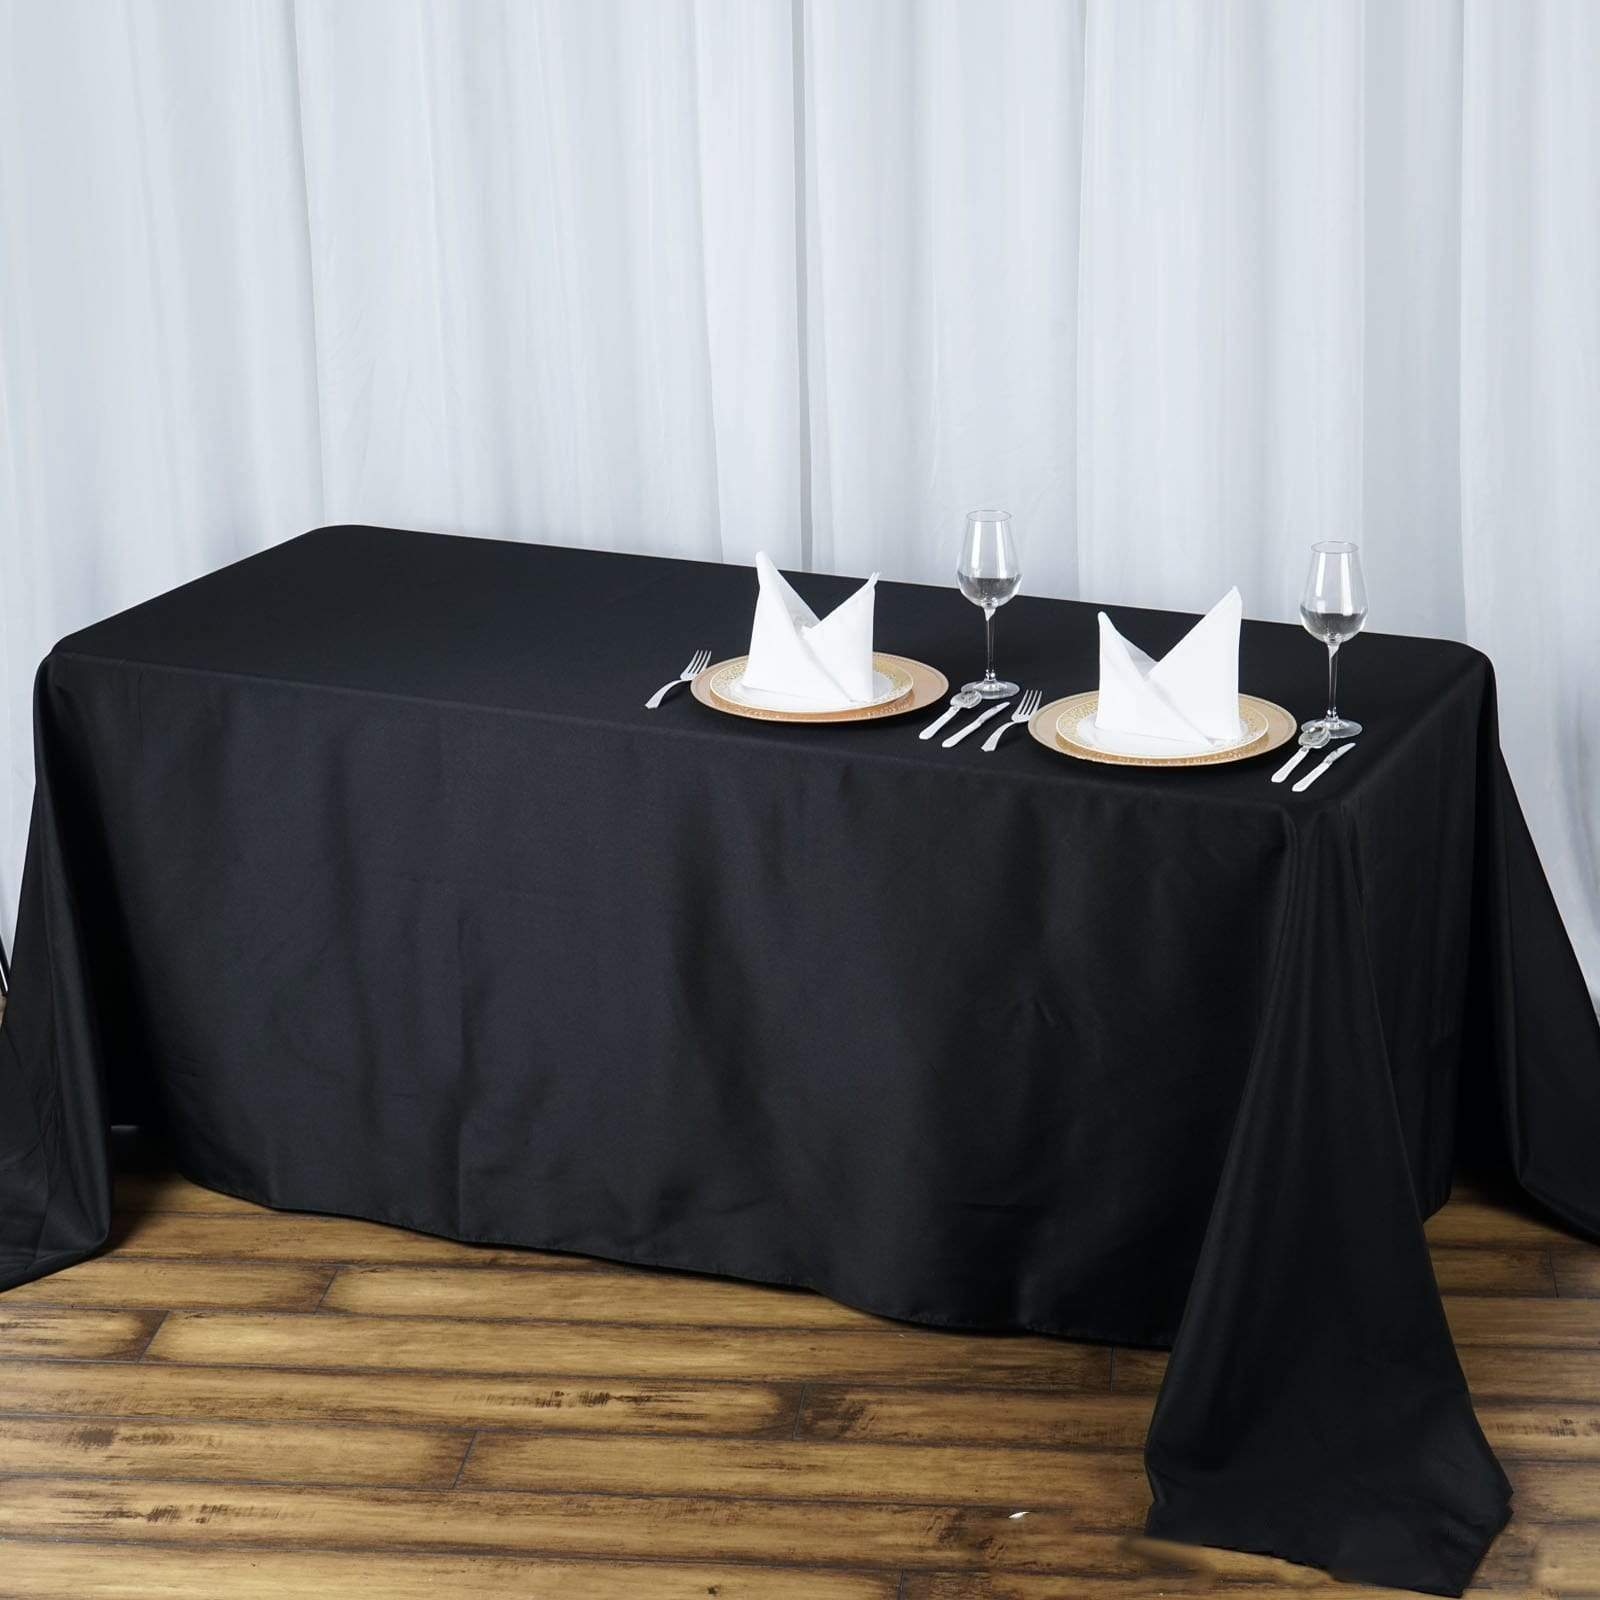 72x120-Inch RECTANGULAR Polyester Tablecloths Restaurant Catering Home Wedding